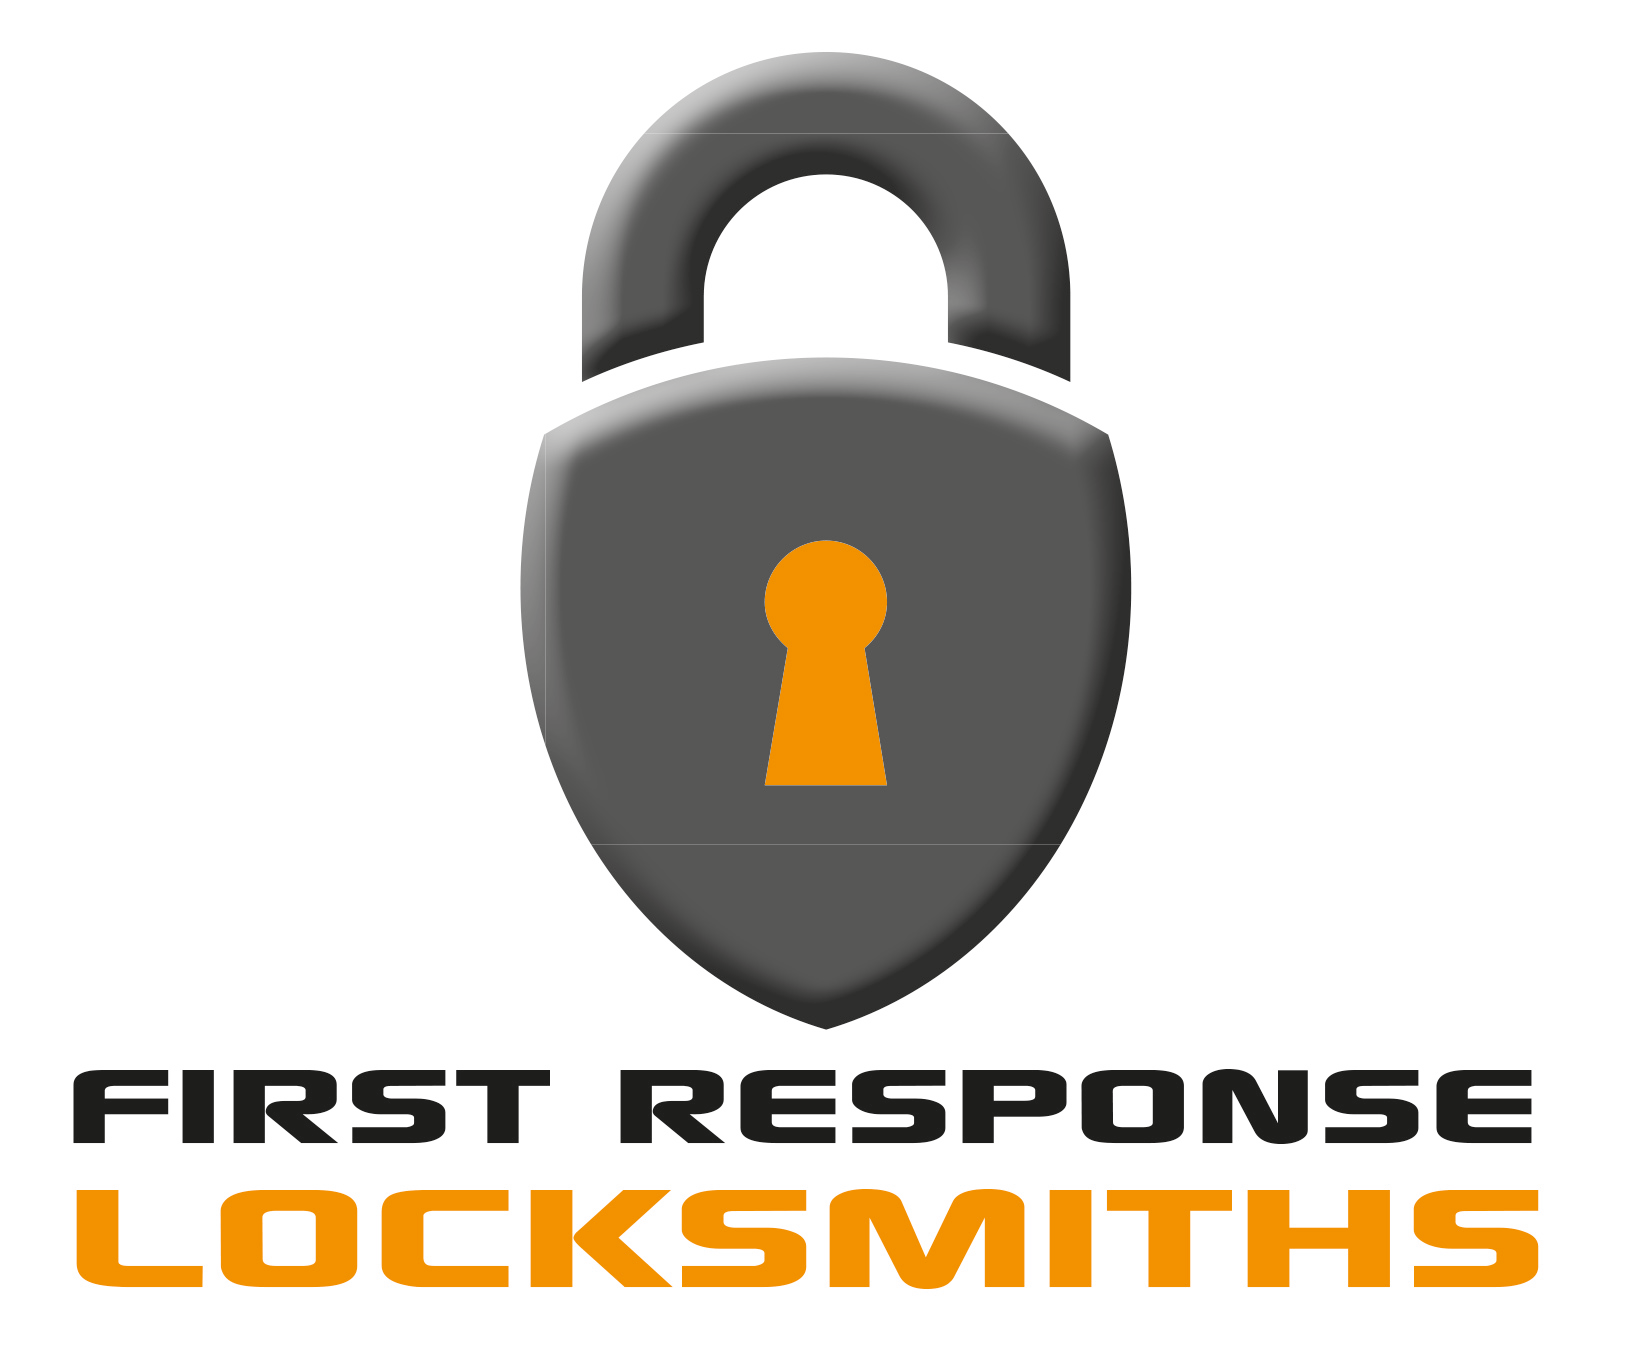 First Response Locksmith